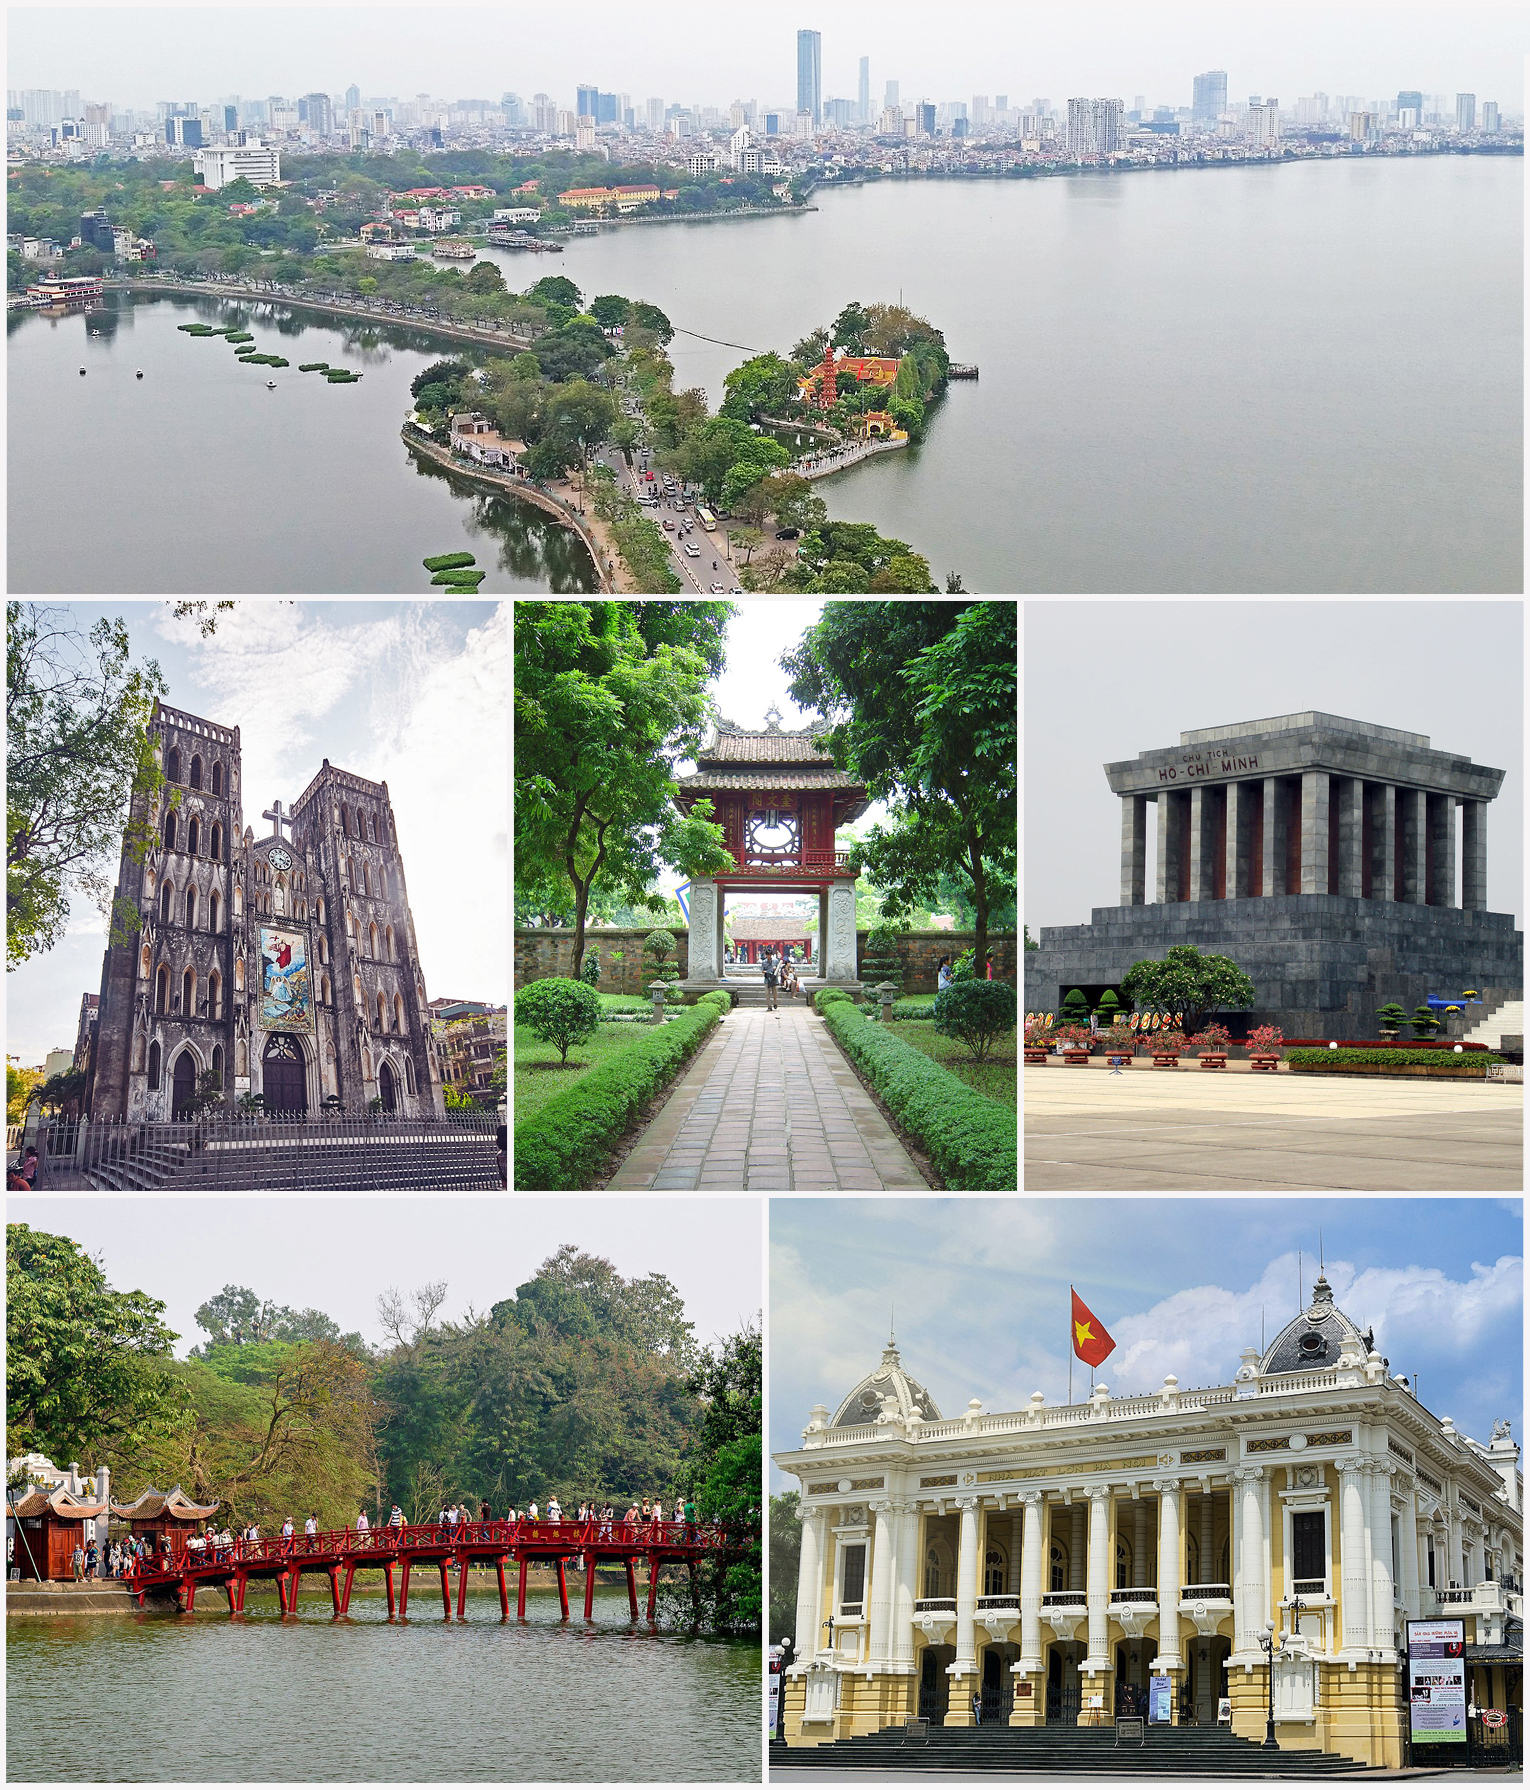 Major attractions to visit in Hanoi